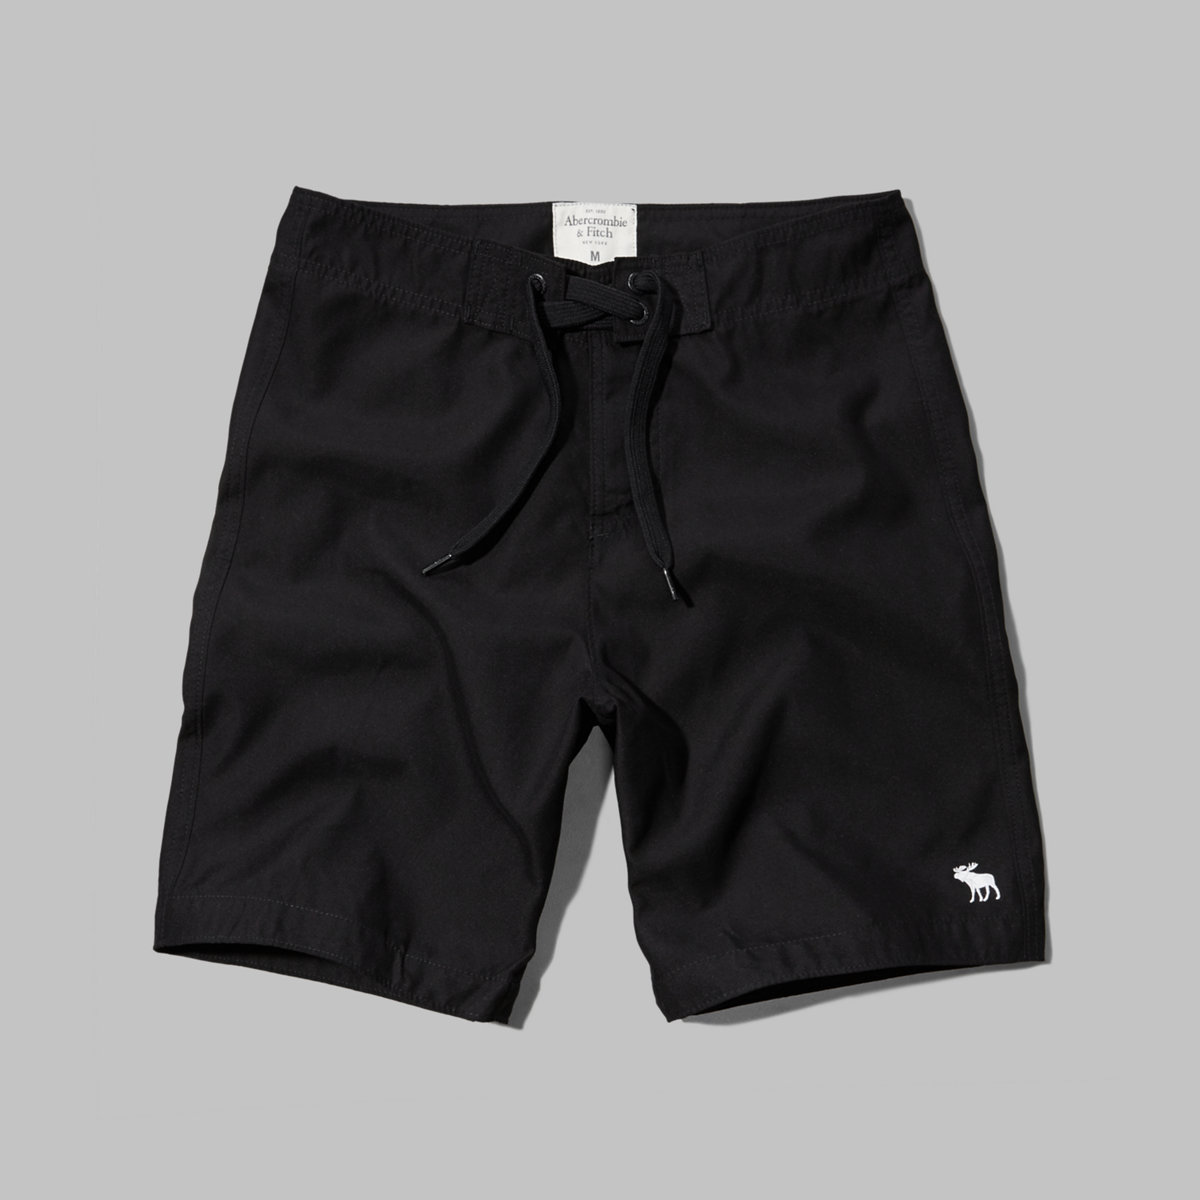 A&F Classic Fit Boardshorts